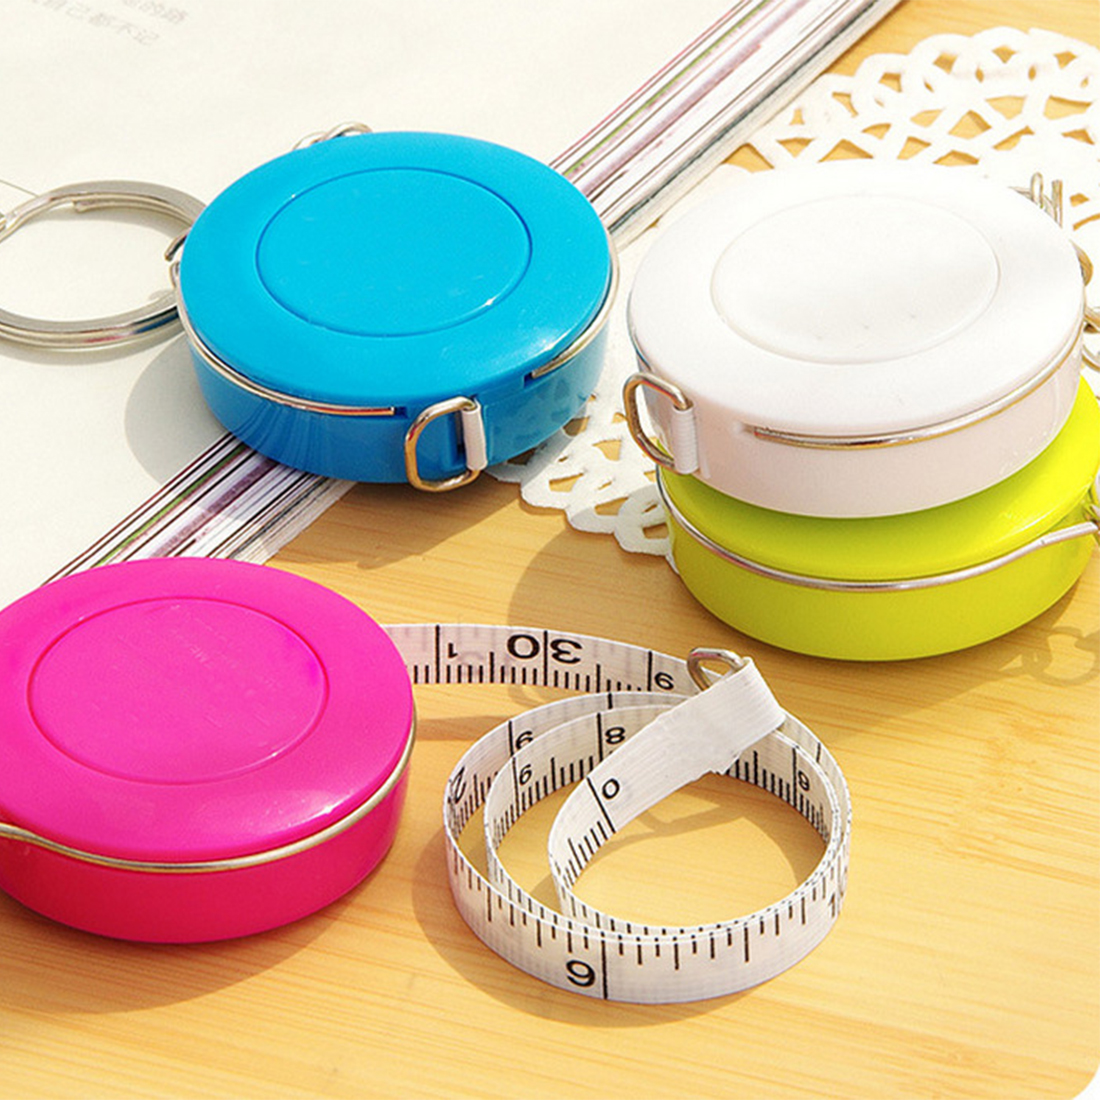 Mini Portable Tape Measure 1.5m Retractable Ruler Centimeter/inch Small Tape Measure Ruler Candy Color Cute Design For Travel